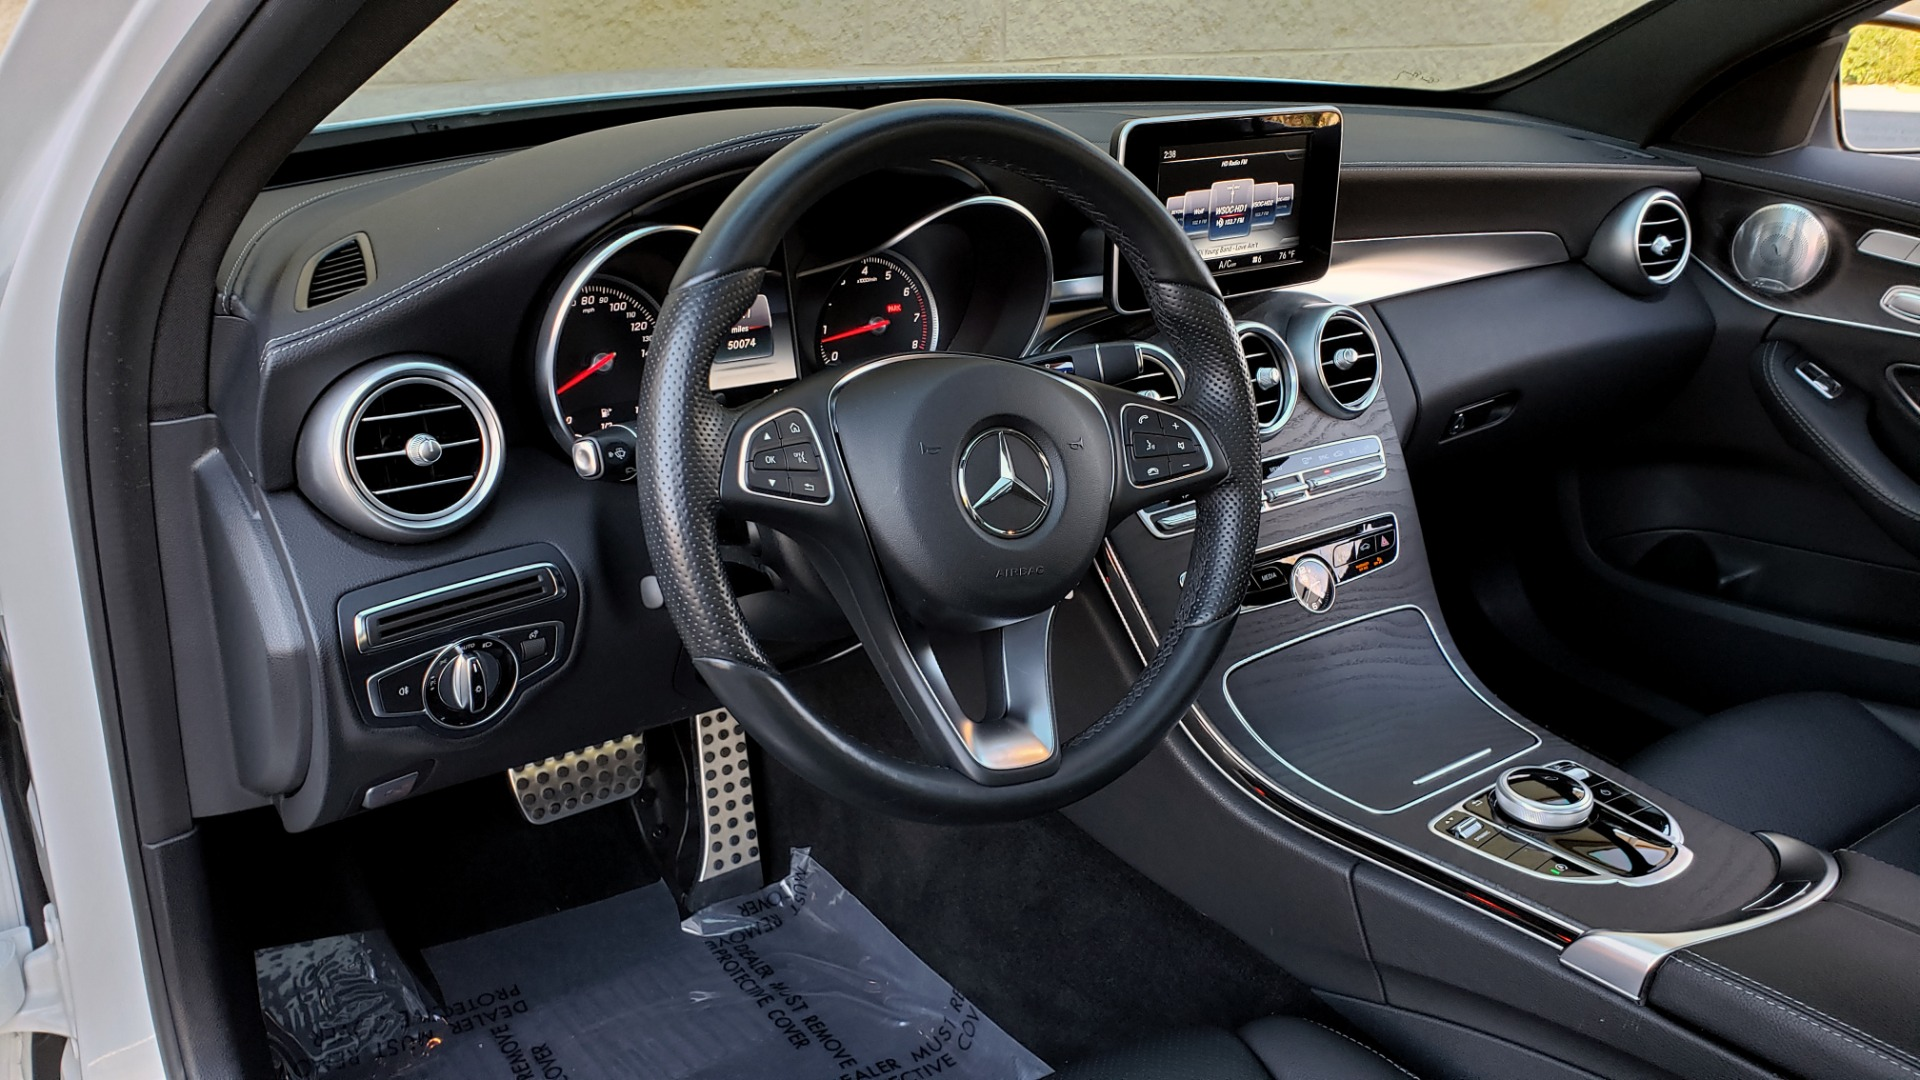 Used 2017 Mercedes-Benz C-CLASS C 300 SPORT / PREM PKG / PANO-ROOF / NAV / HTD STST / REARVIEW for sale Sold at Formula Imports in Charlotte NC 28227 31